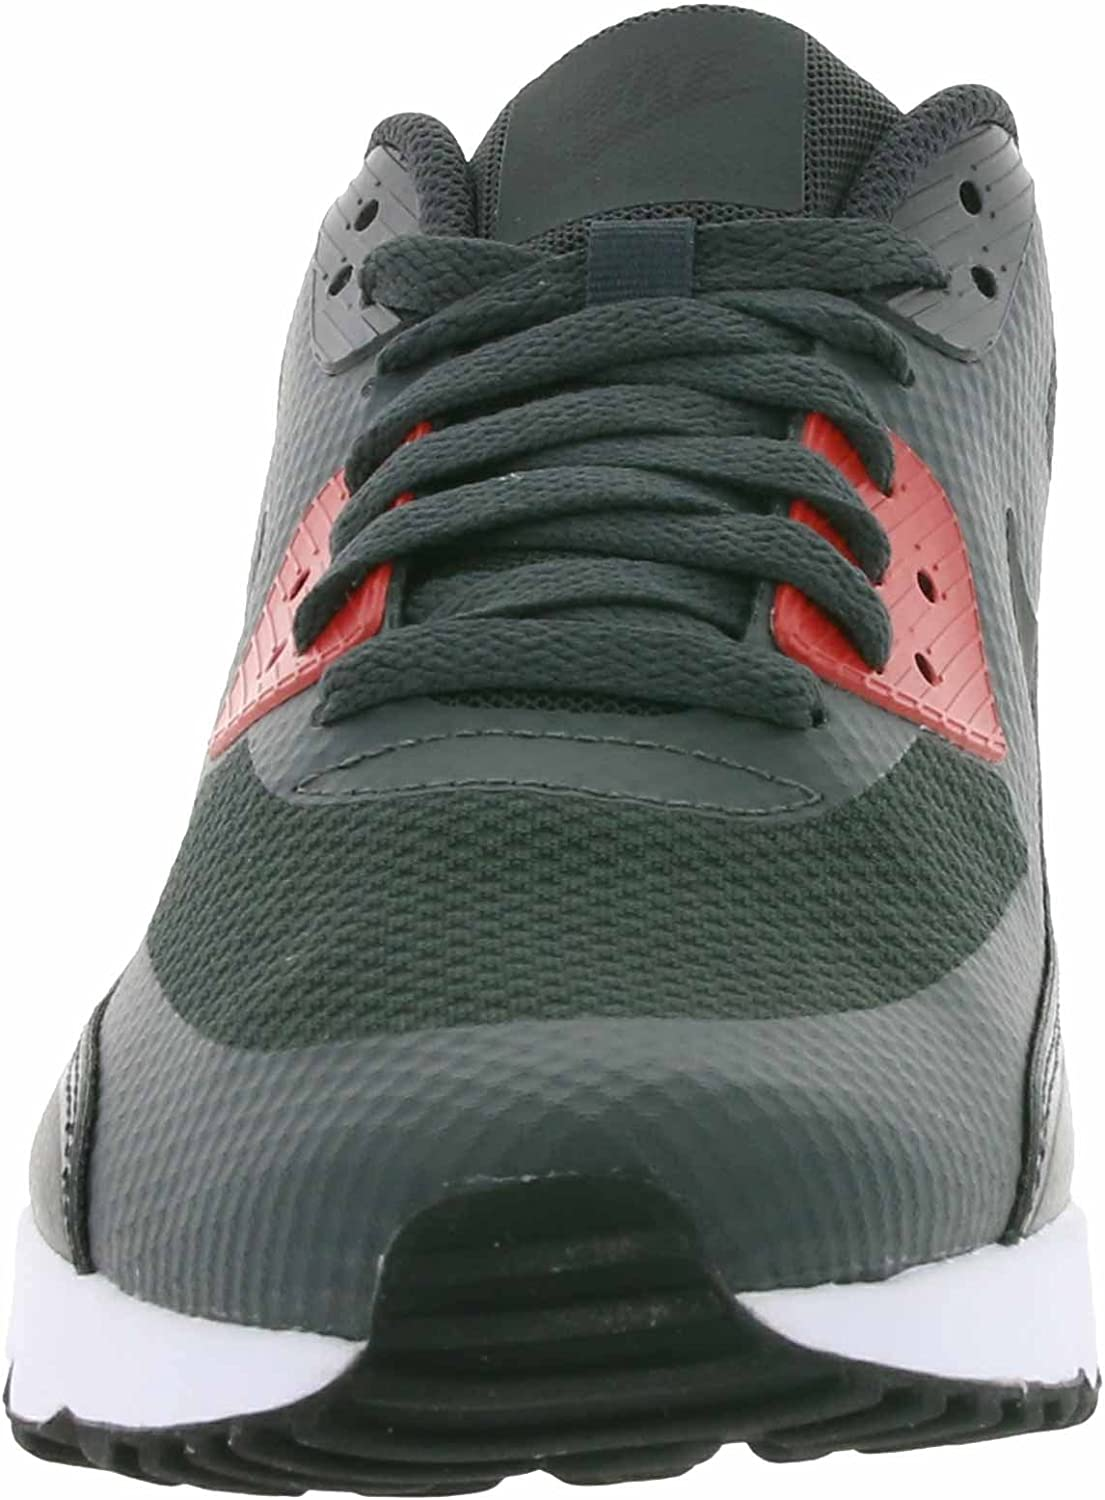 Nike AIR MAX 90 Ultra 2.0 Essential Mens Running Shoes 875695 007_8.5 AnthraciteBlack University RED White